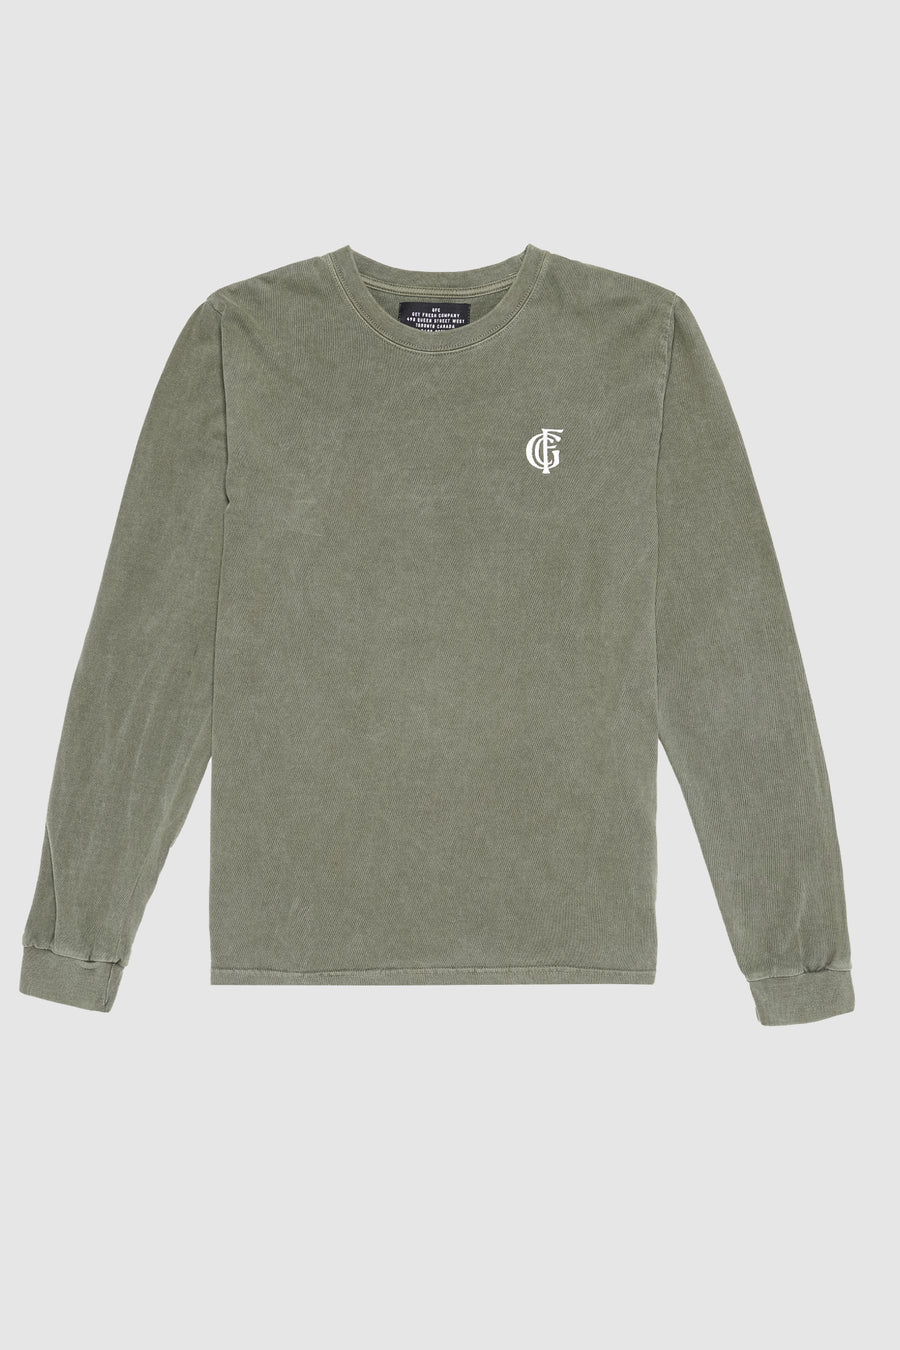 LEISURE MONOGRAM LONG SLEEVE